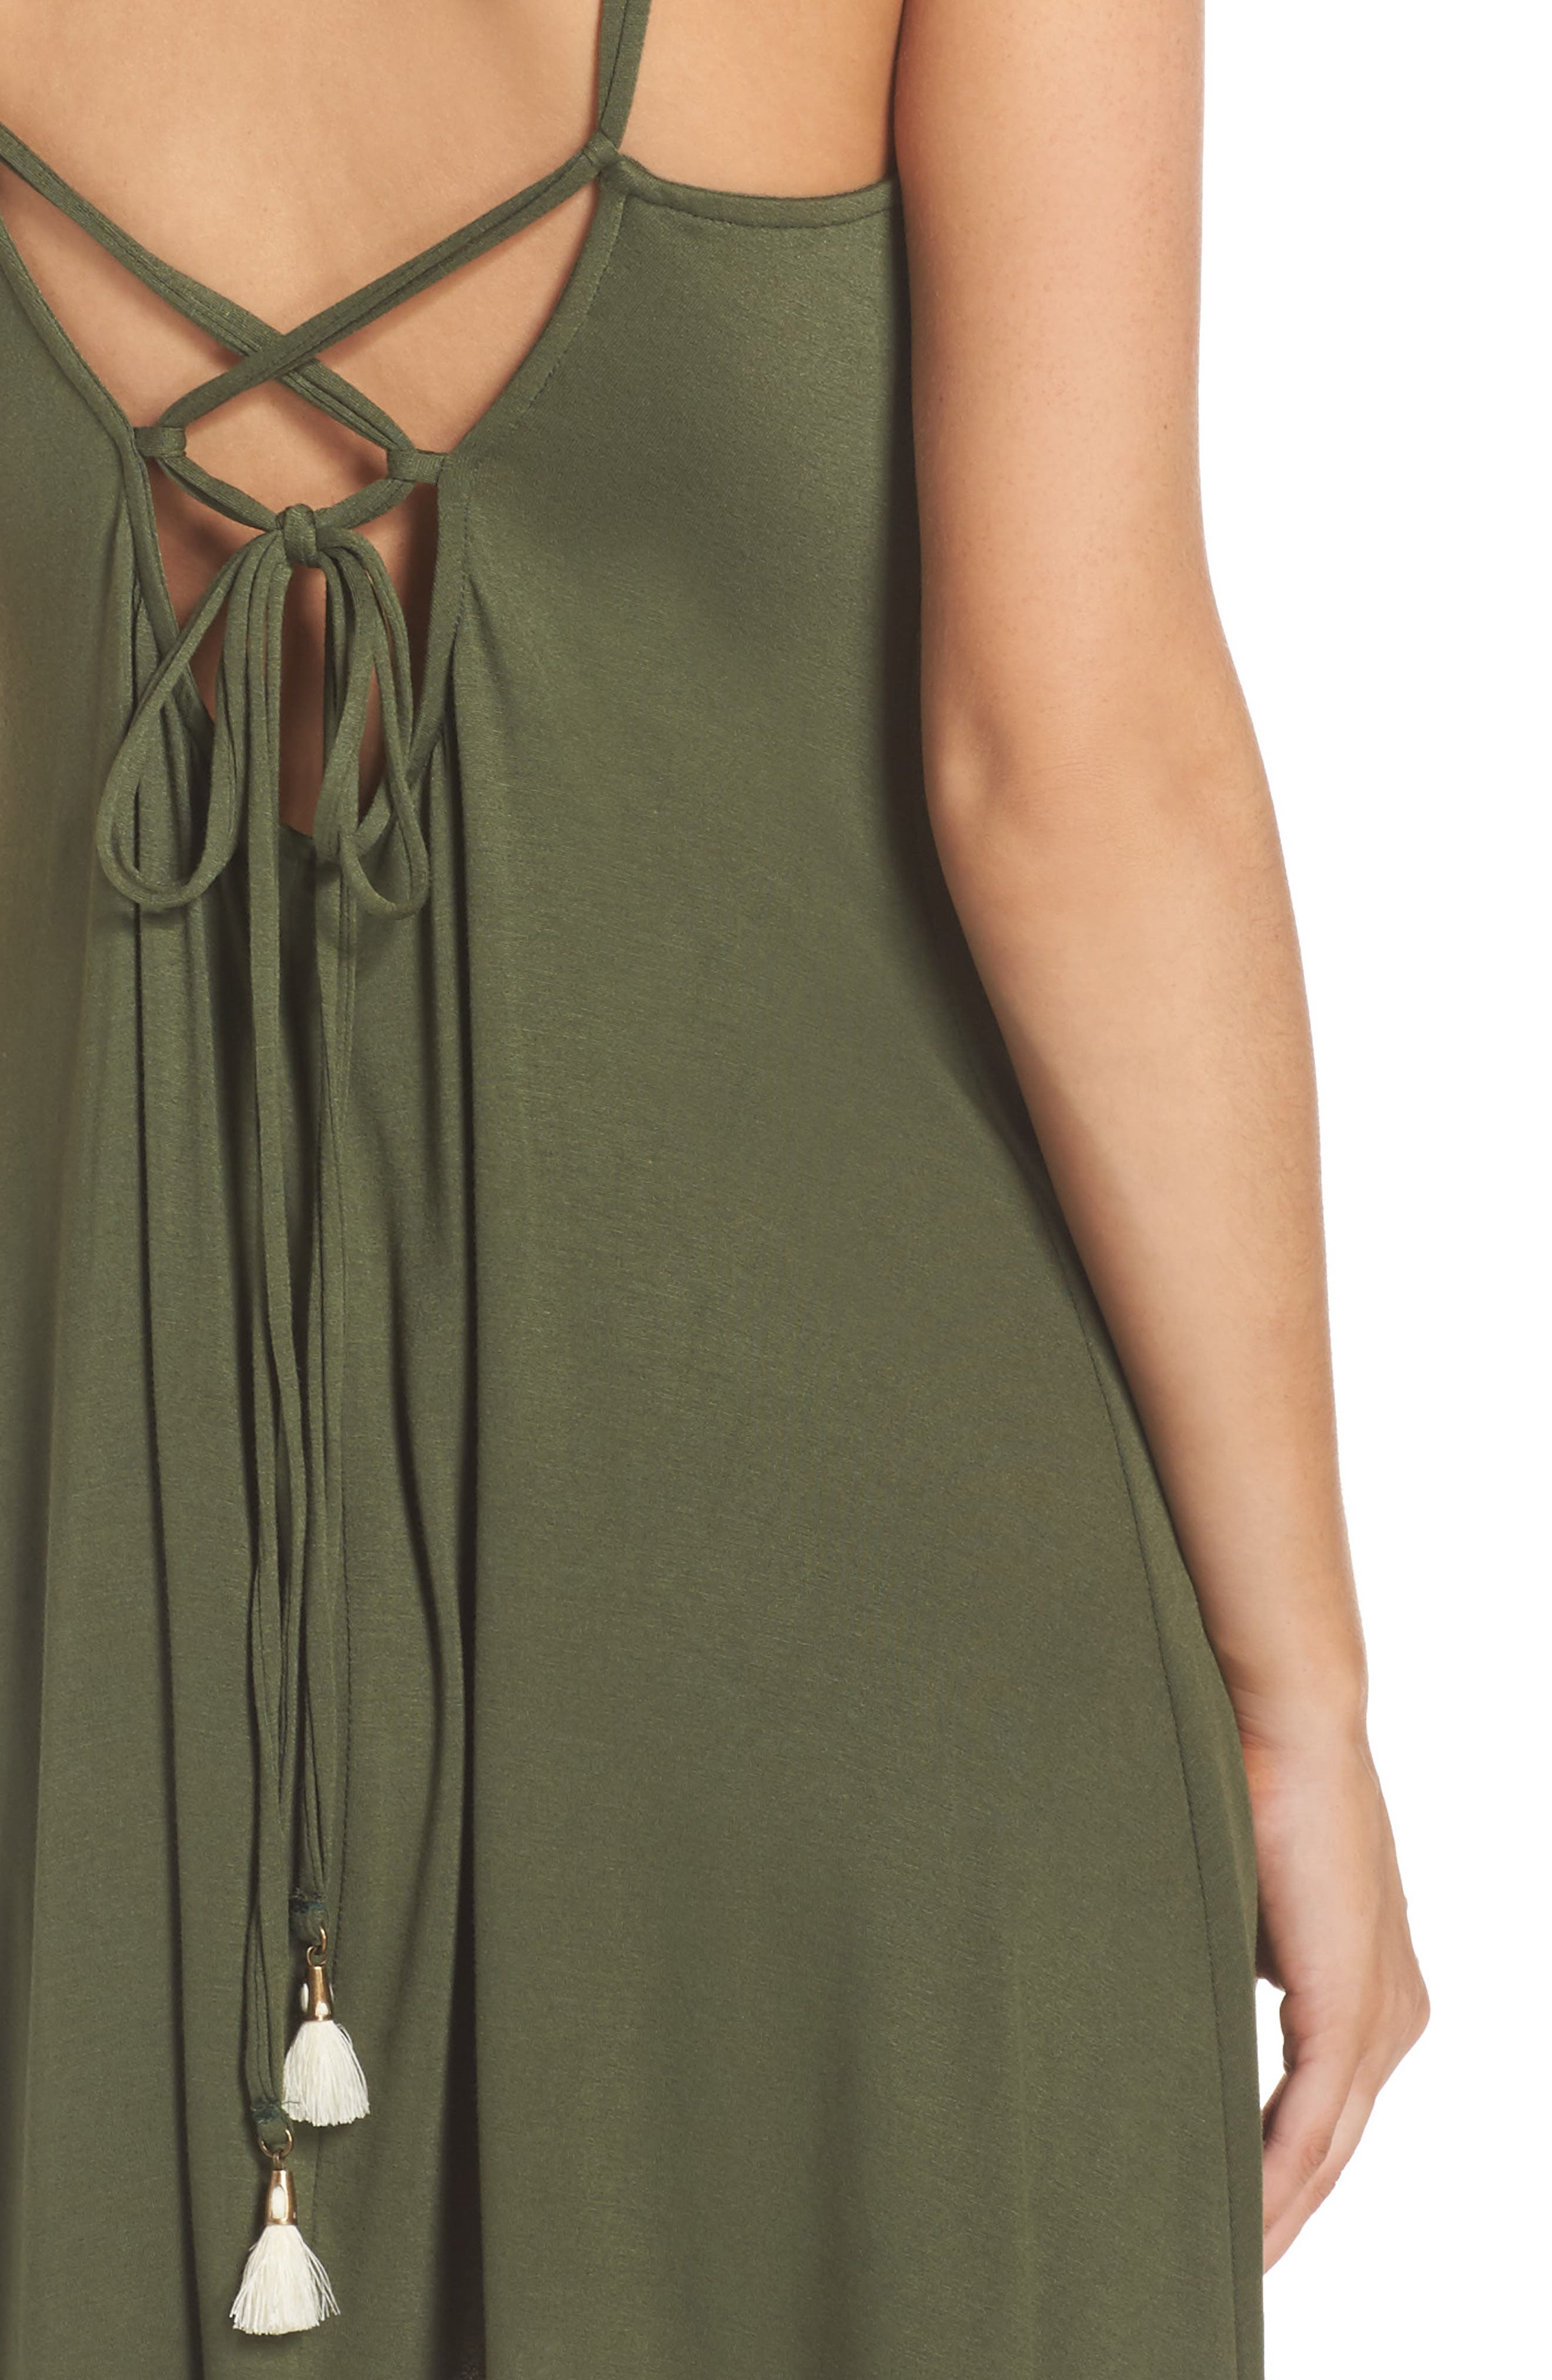 Take Cover Cover-Up Dress,                             Alternate thumbnail 4, color,                             302